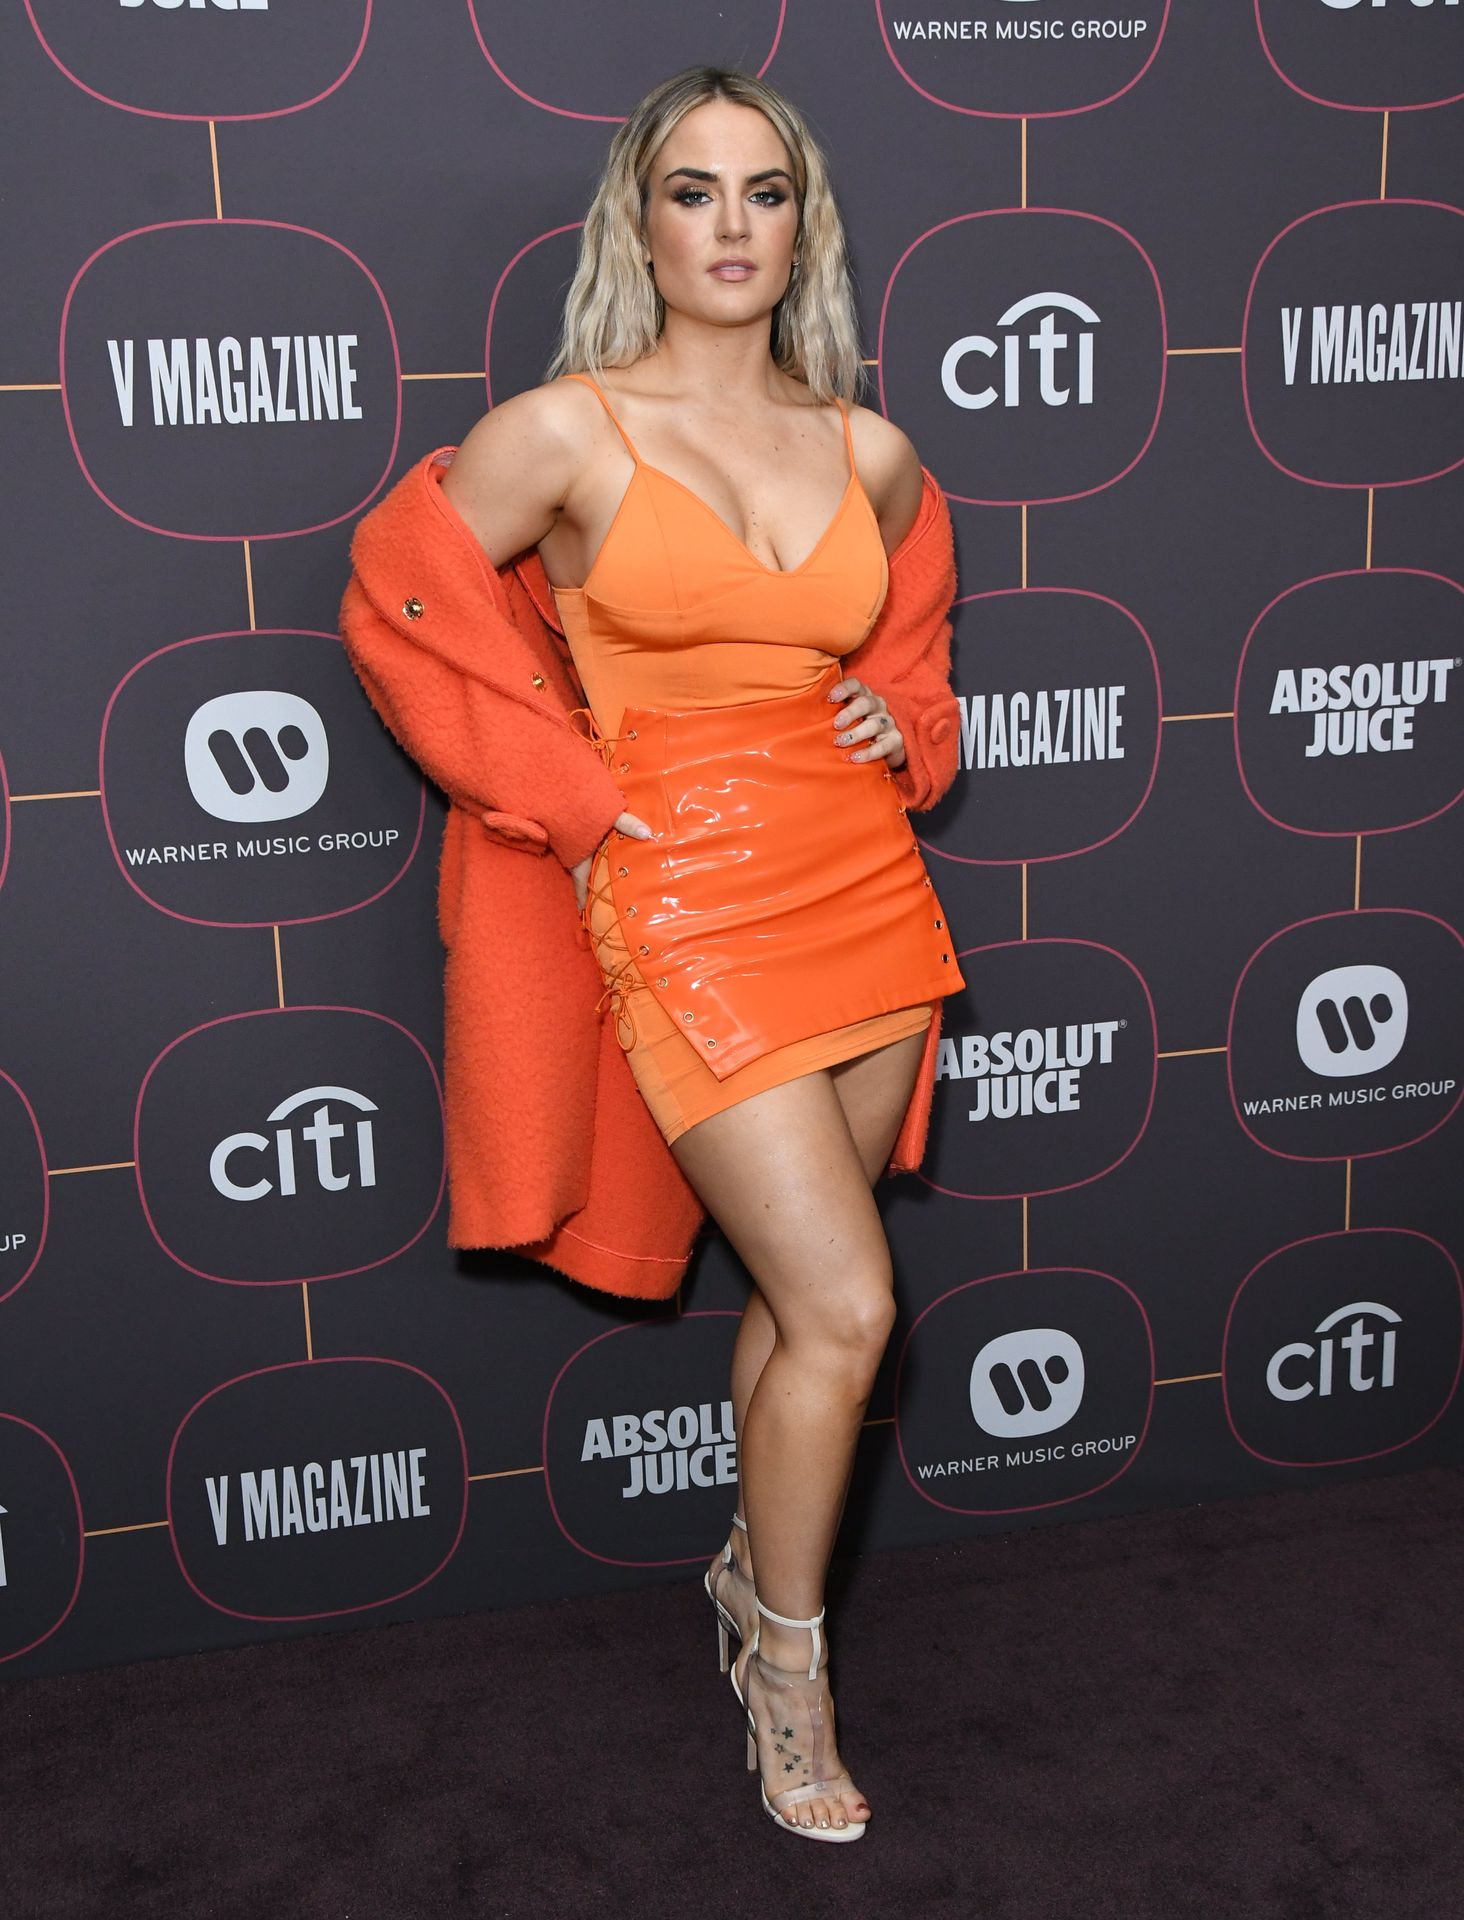 Jojo Shows Off Her Tits At The Warner Music Group Pre Grammy Party In Hollywood 0029